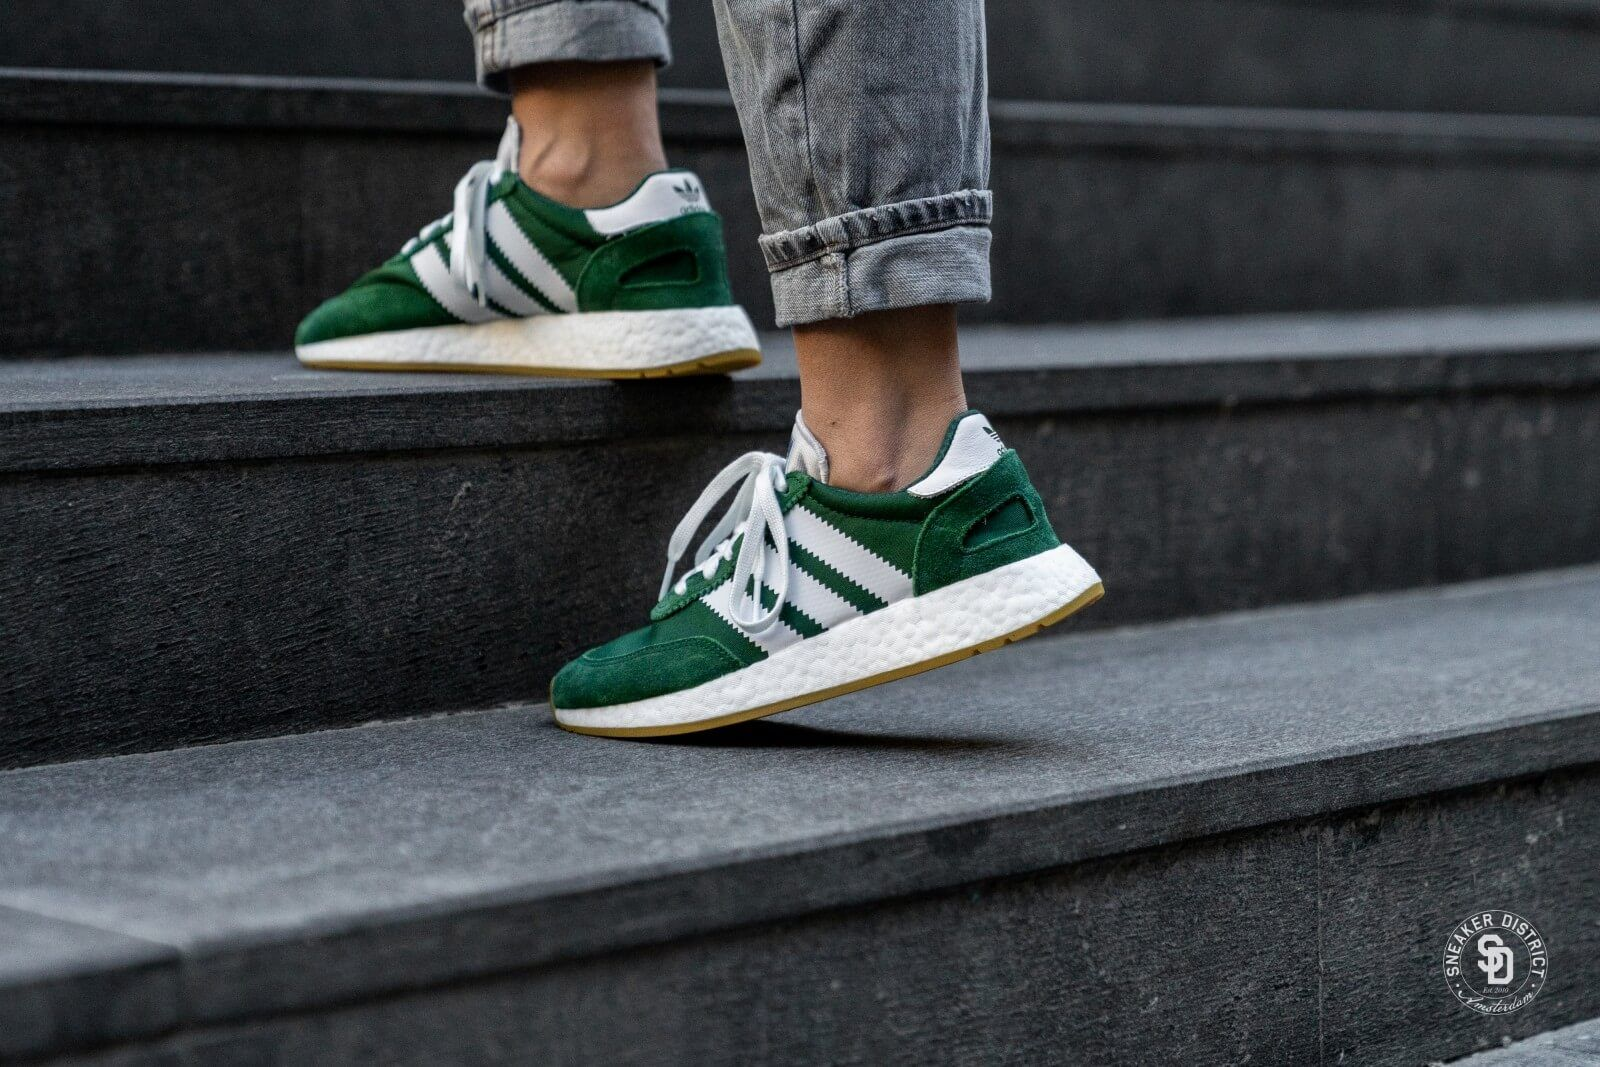 sneakerdistrict.nl) Adidas Women's I-5923 Collegiate Green ...